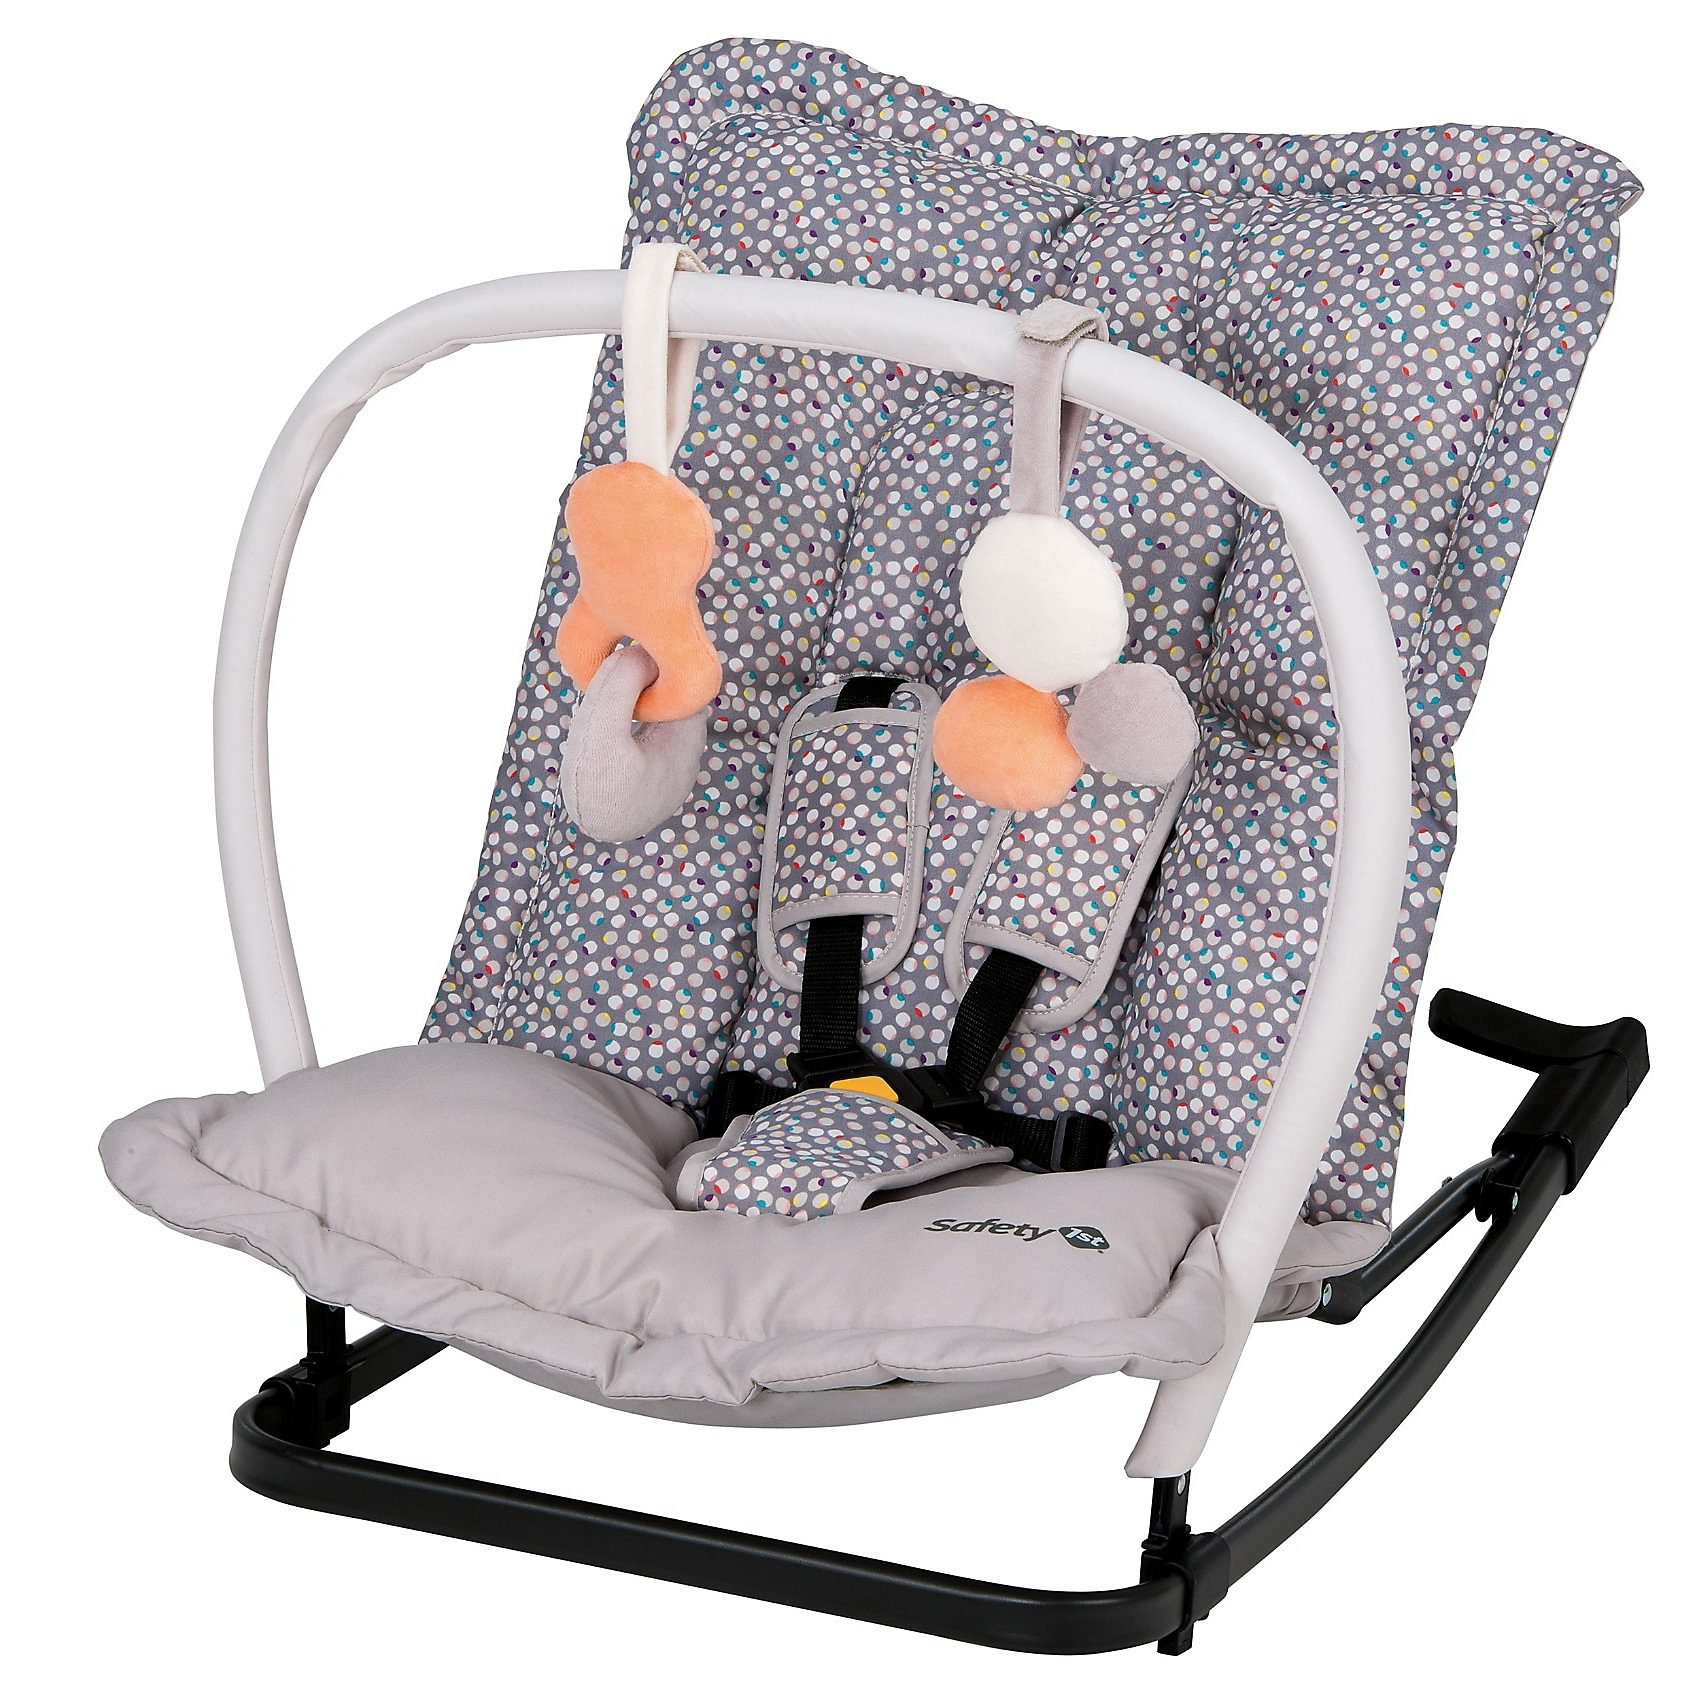 Safety 1st Wippe Mellow, multicolor candy